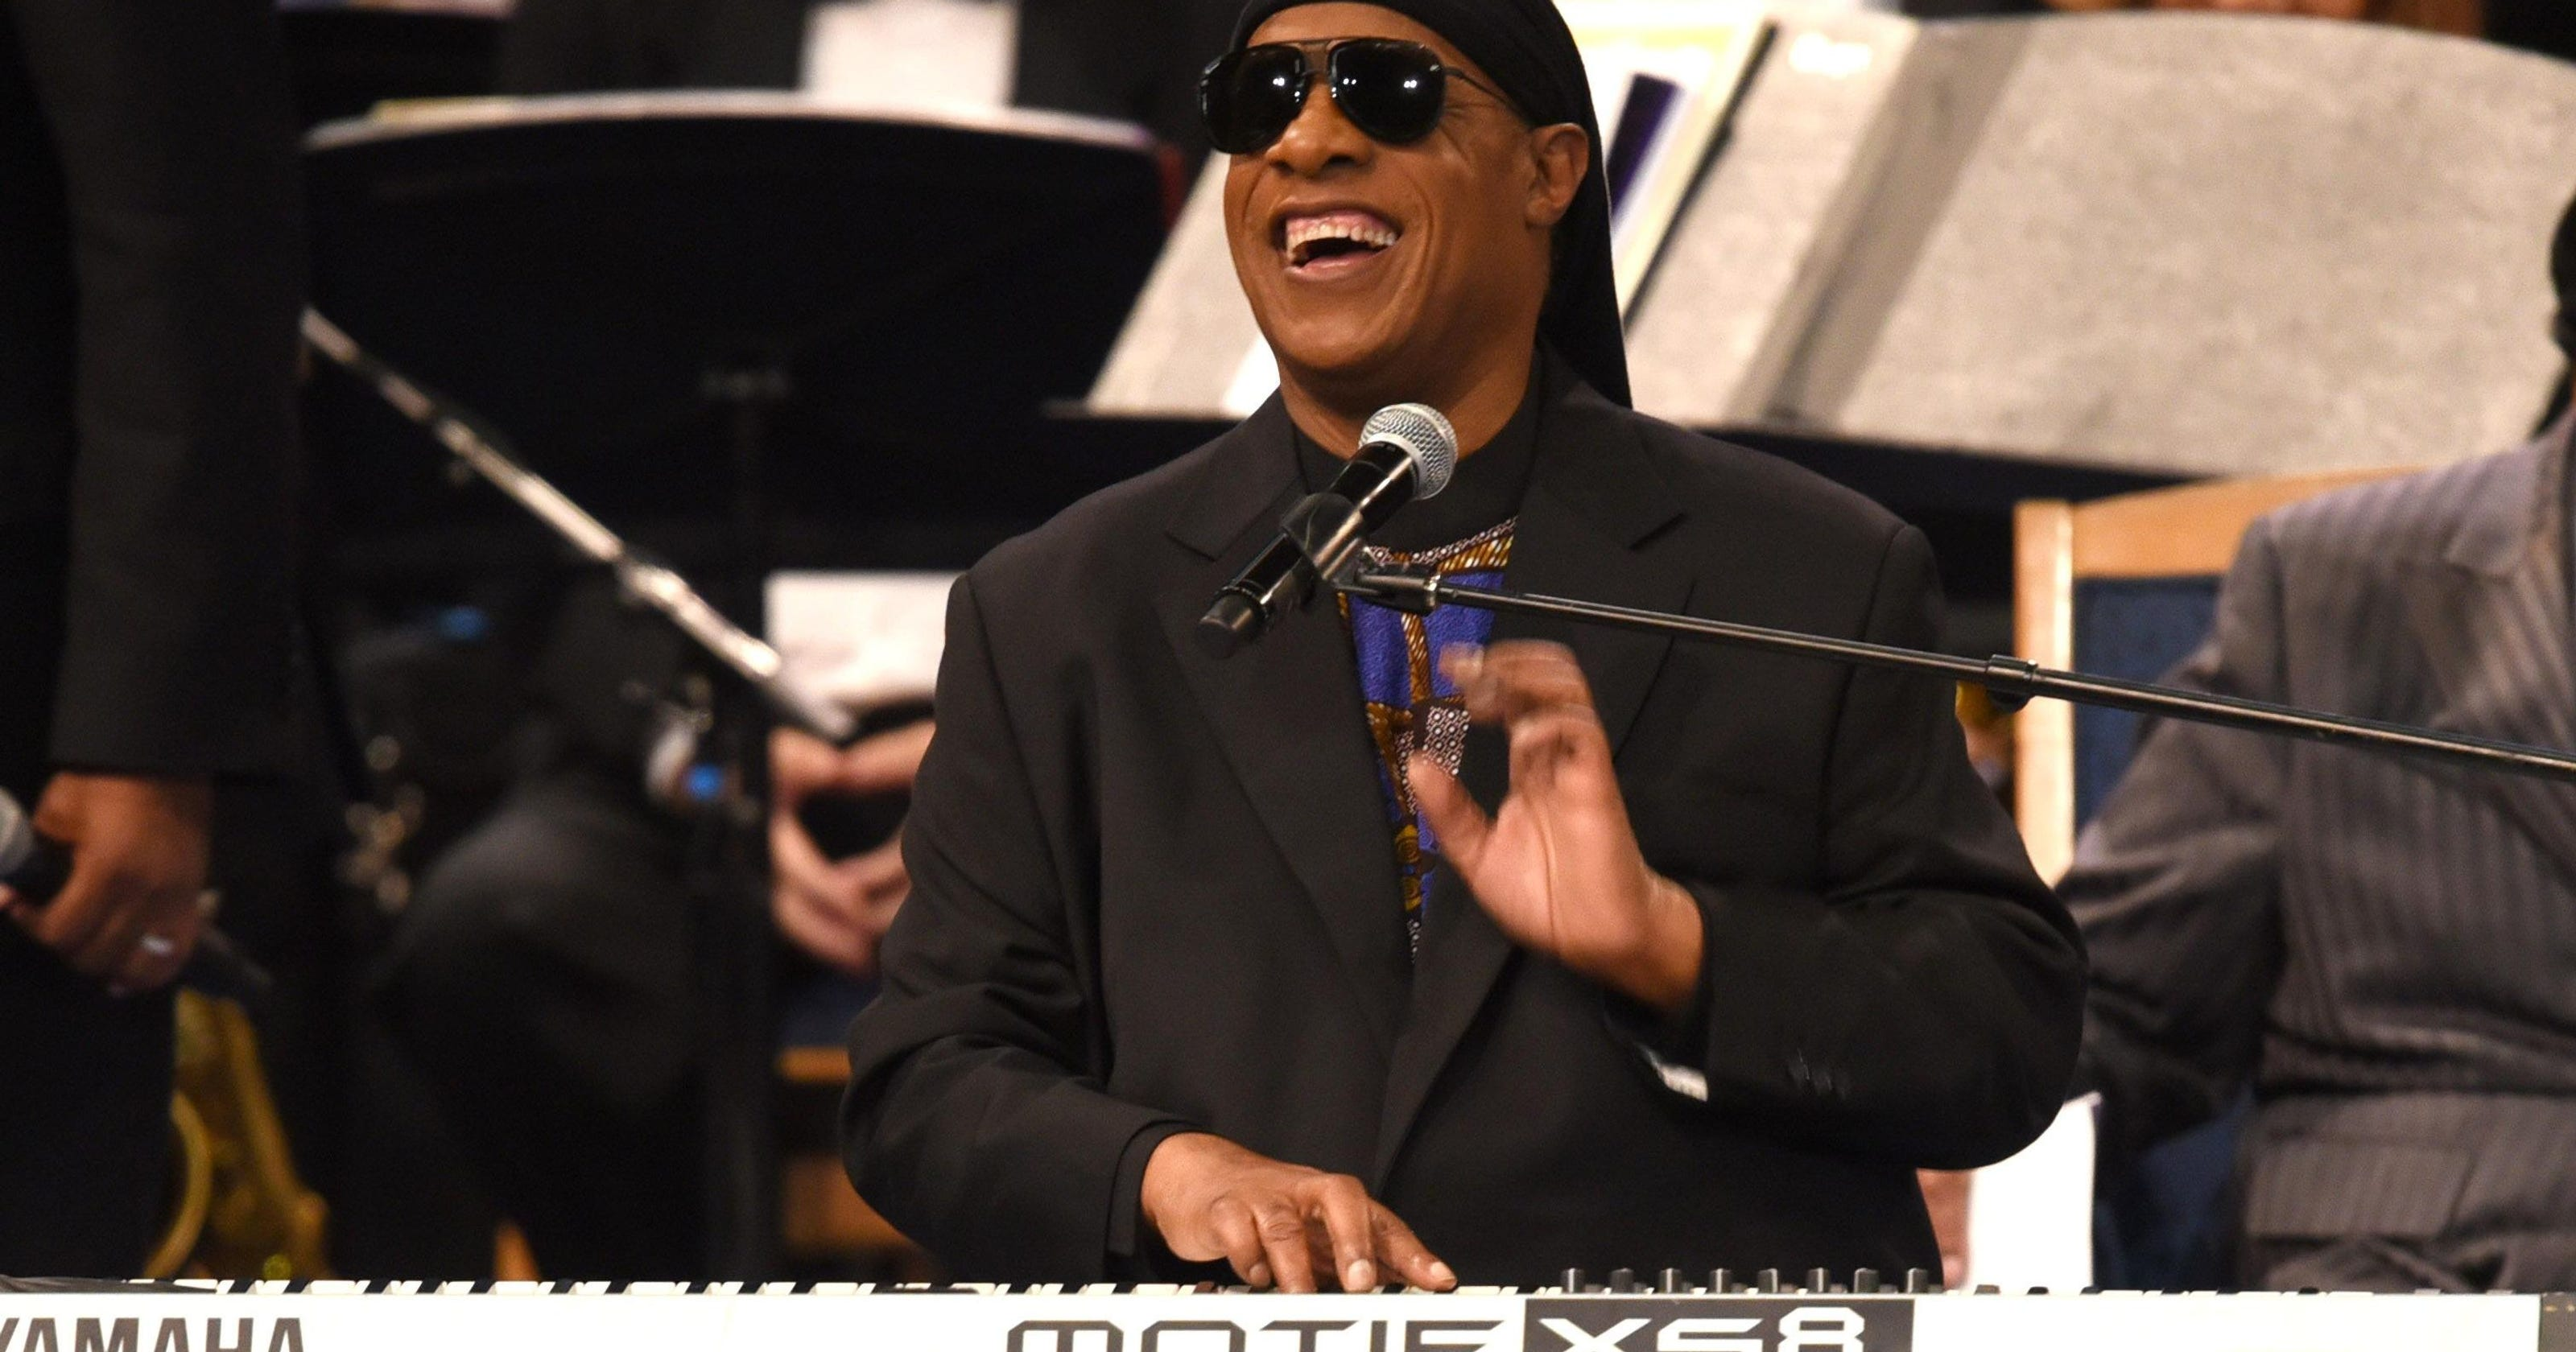 Stevie Wonder ends his concert with an announcement about his surgery